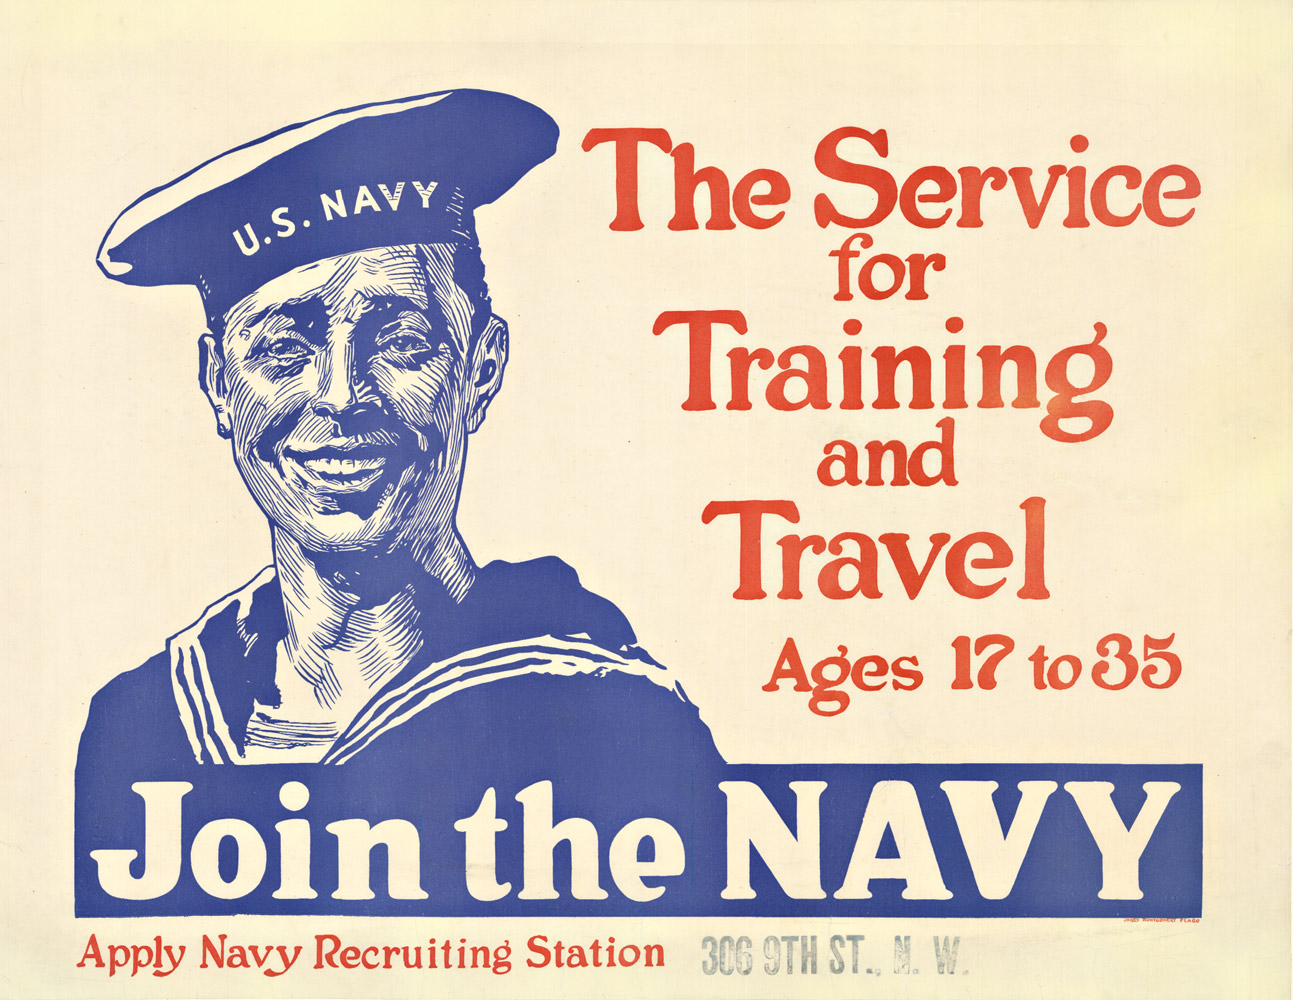 Join the Navy, James Montgomery Flagg